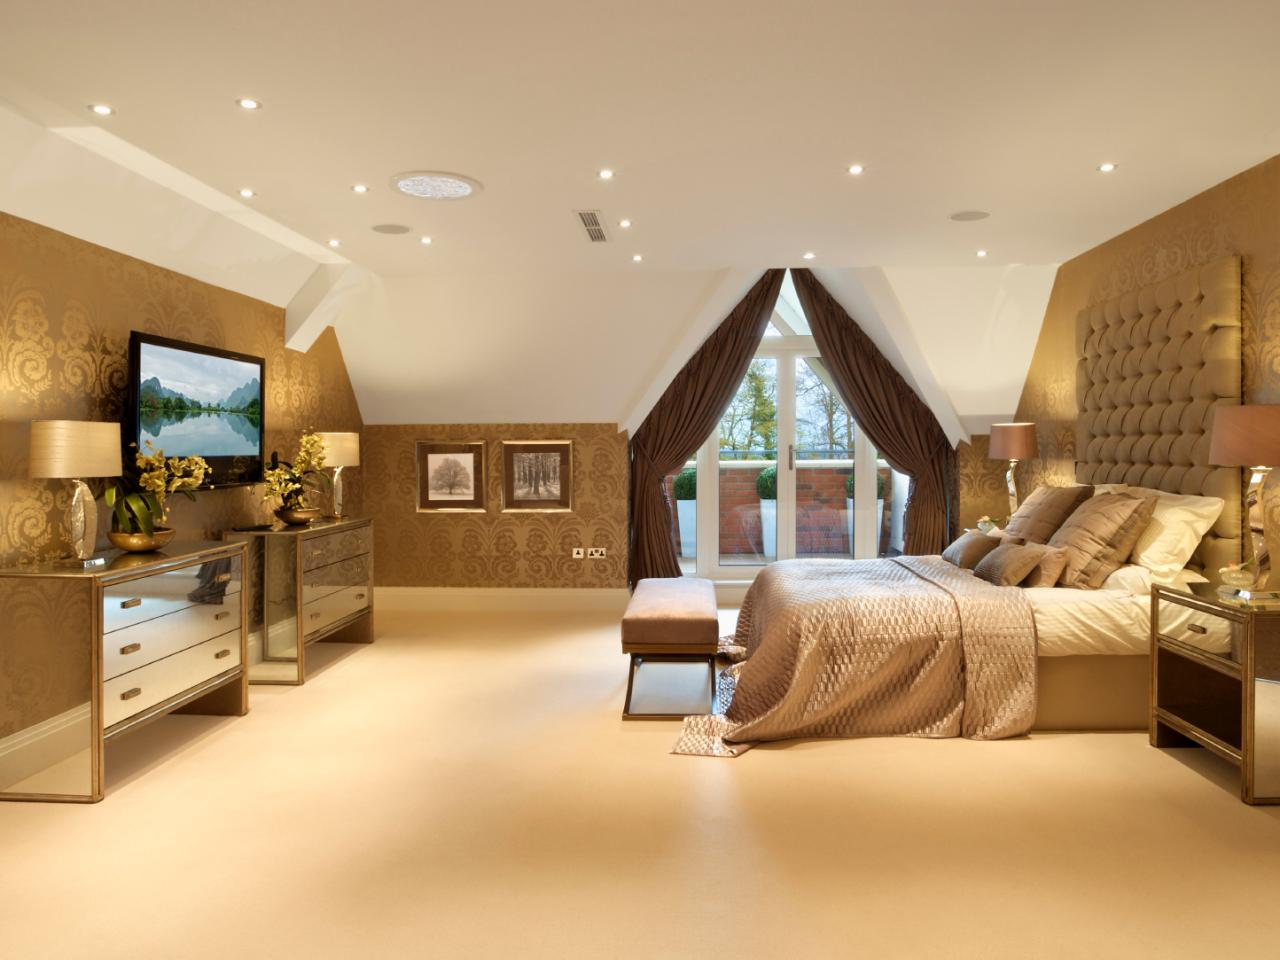 Amazing Bedroom Lighting Ideas You Will Want To Copy Master Bedroom Ideas